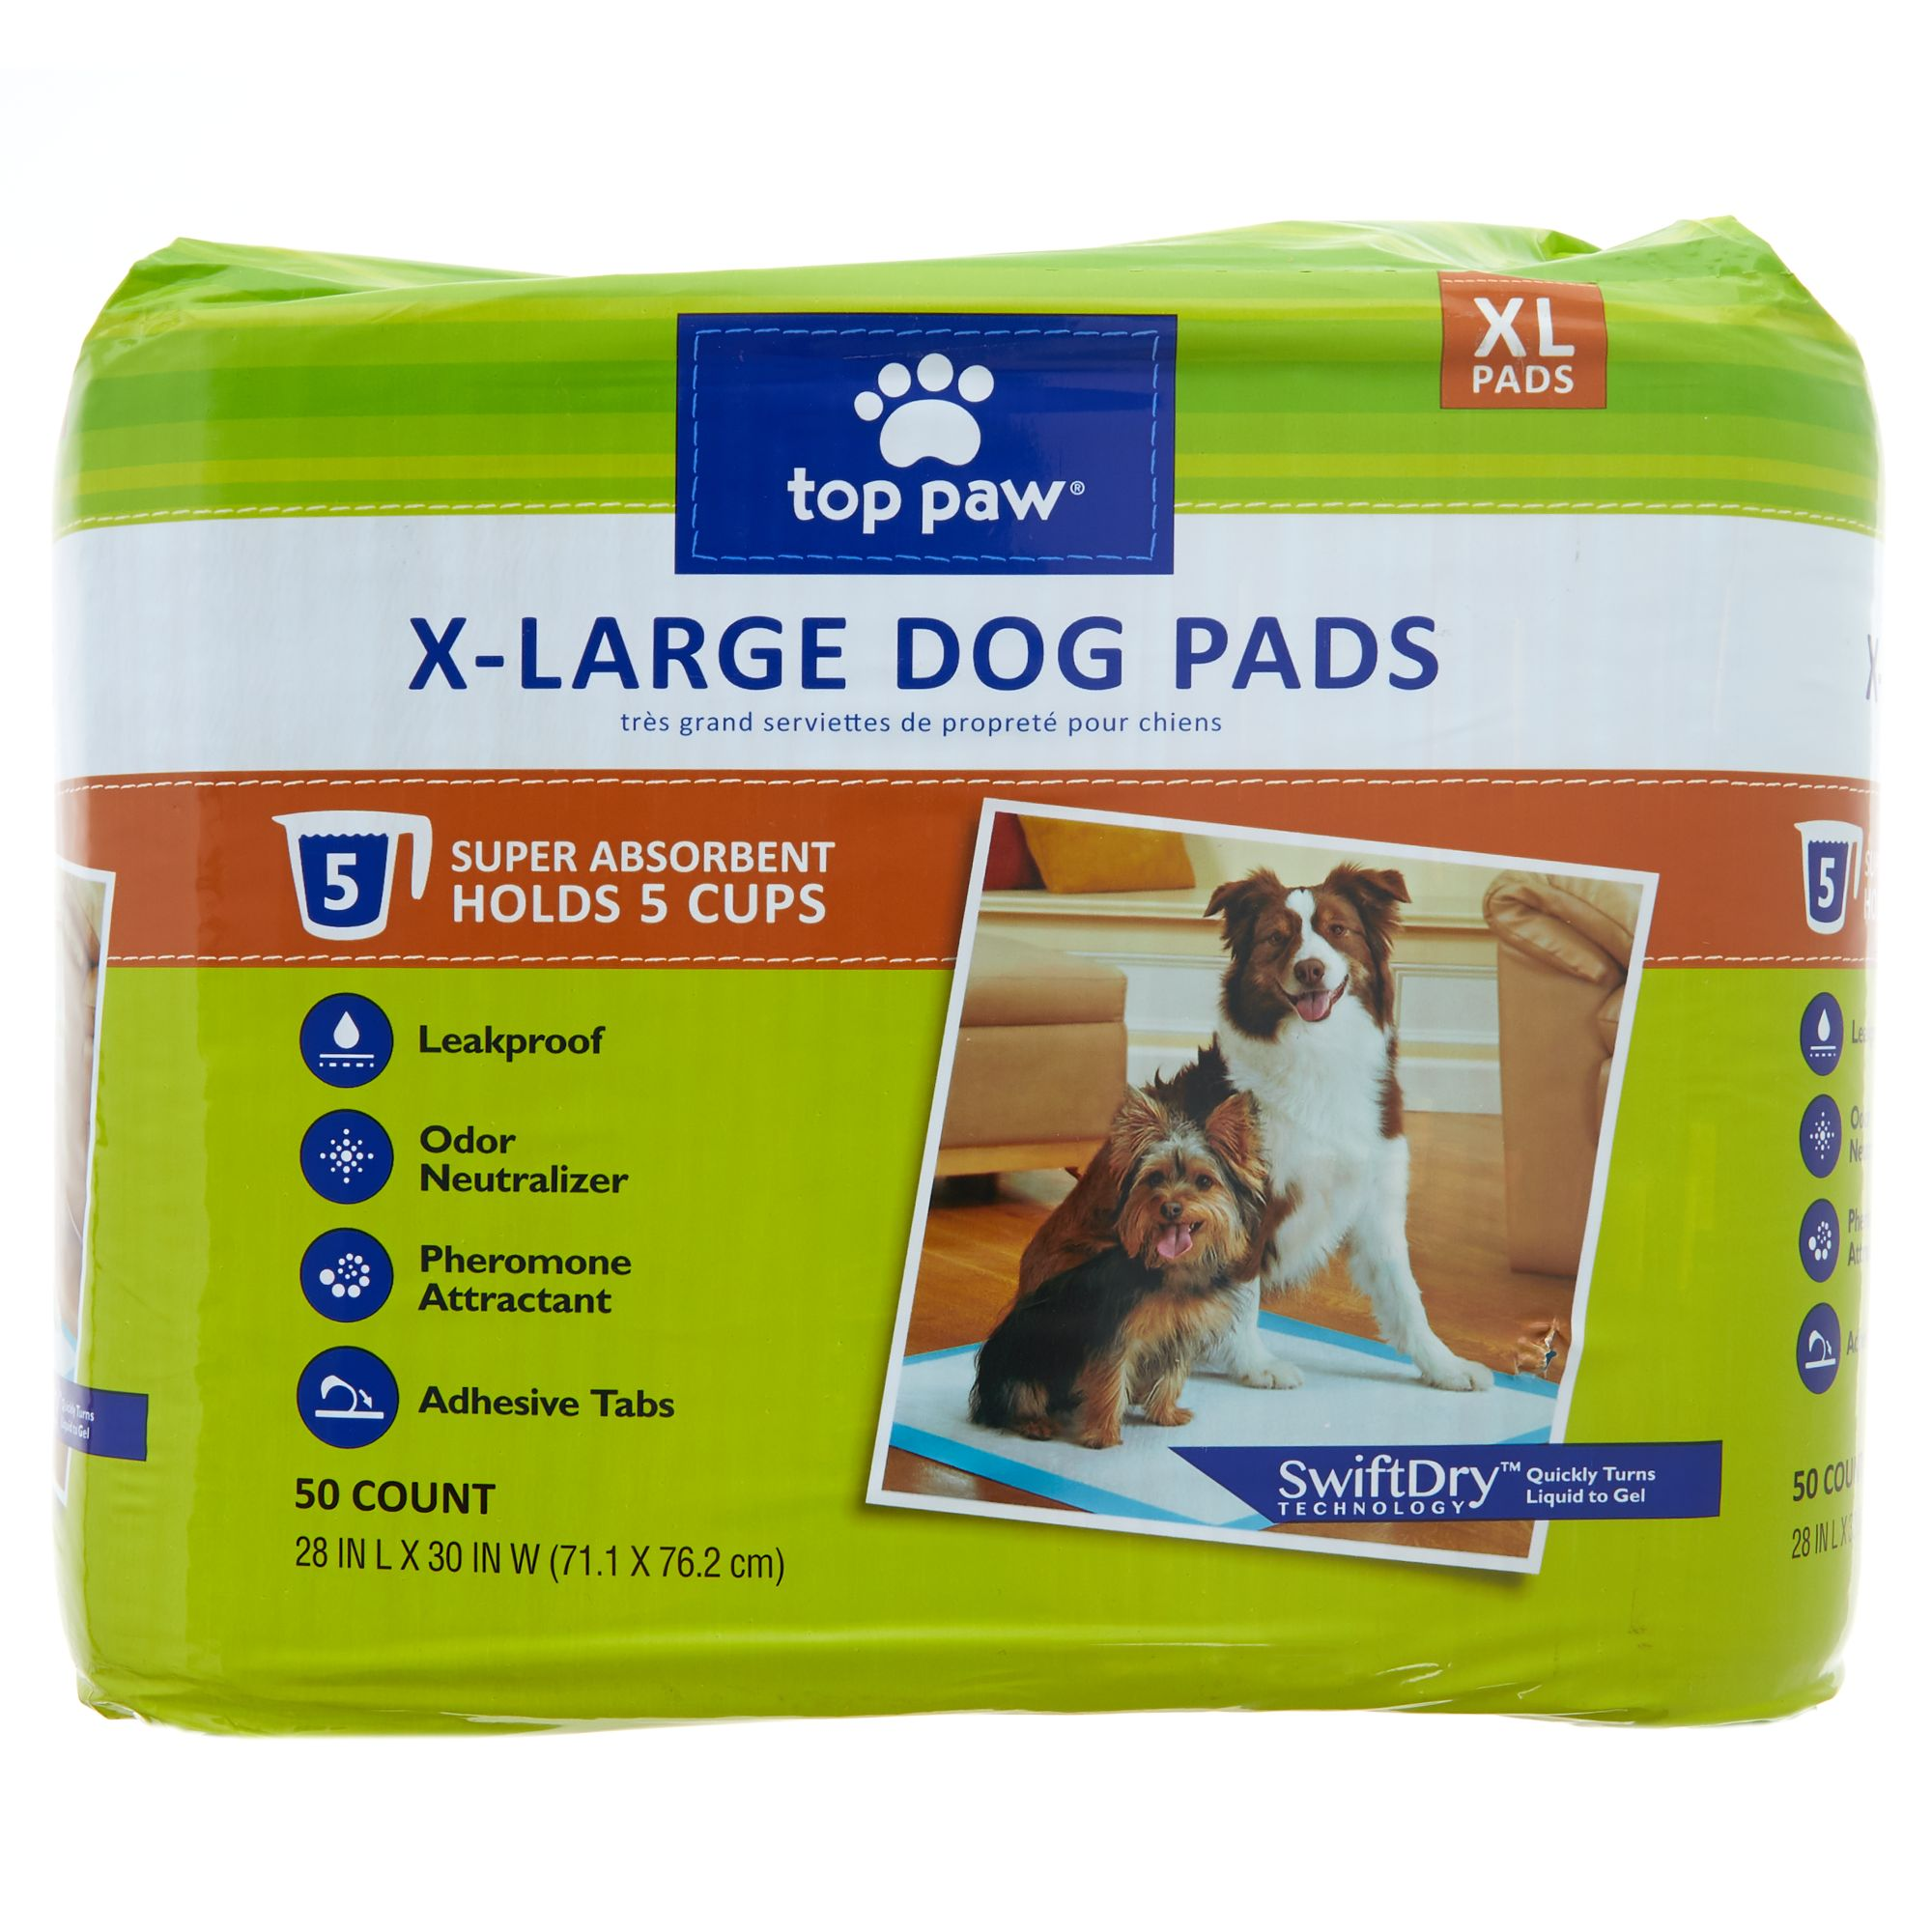 Top Paw X-Large Dog Pads size: 50 Count 5270592